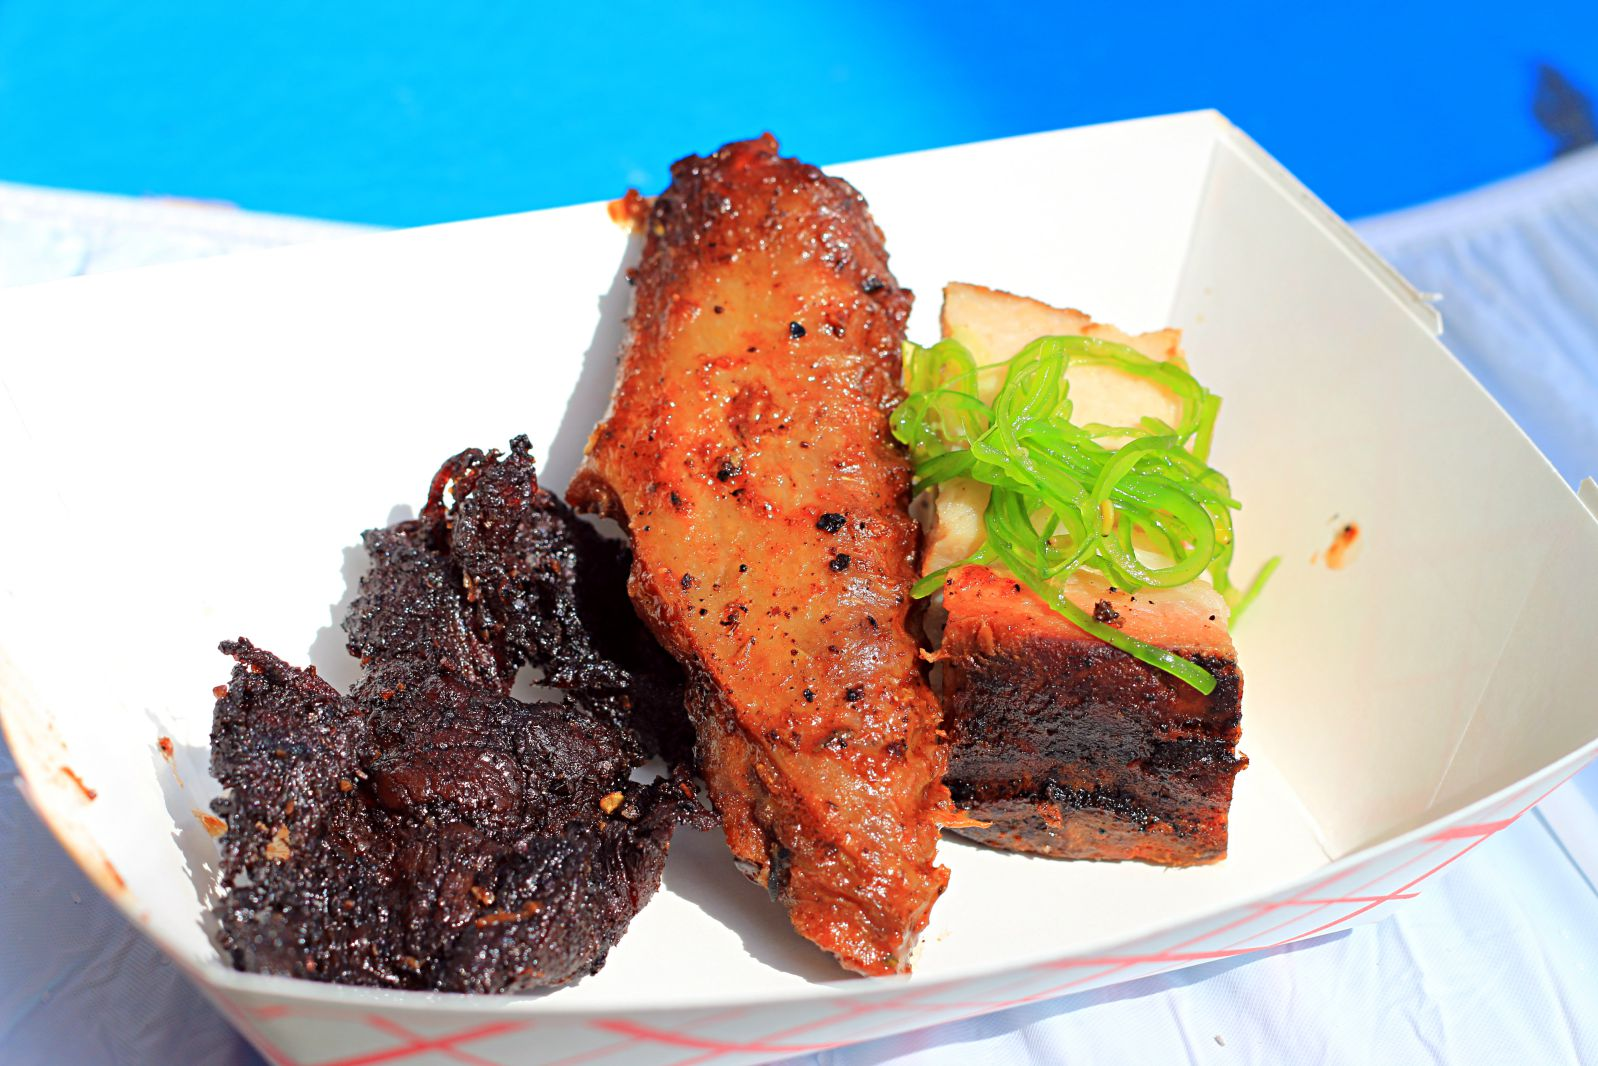 Harlem Road Texas BBQ burnt end, duck wing, and pork belly topped with pickled seaweed at The Woodlands BBQ Fest 2016